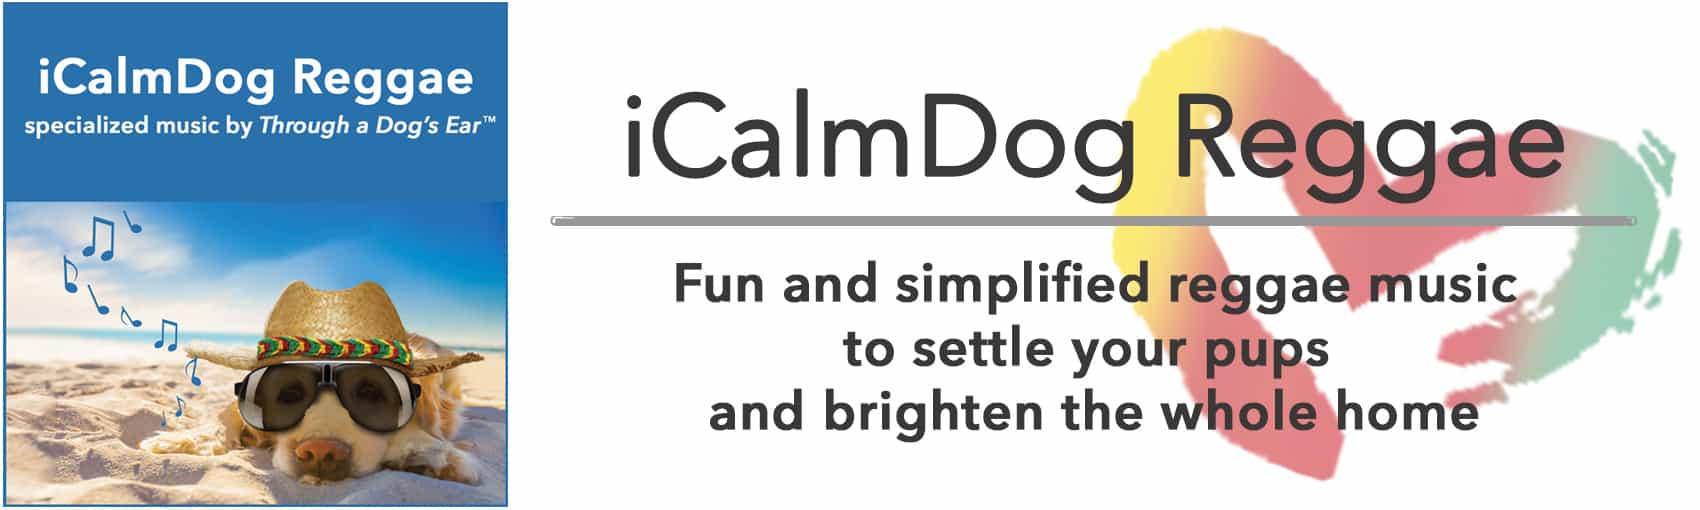 iCalmDog Reggae music is soothing for dogs and people